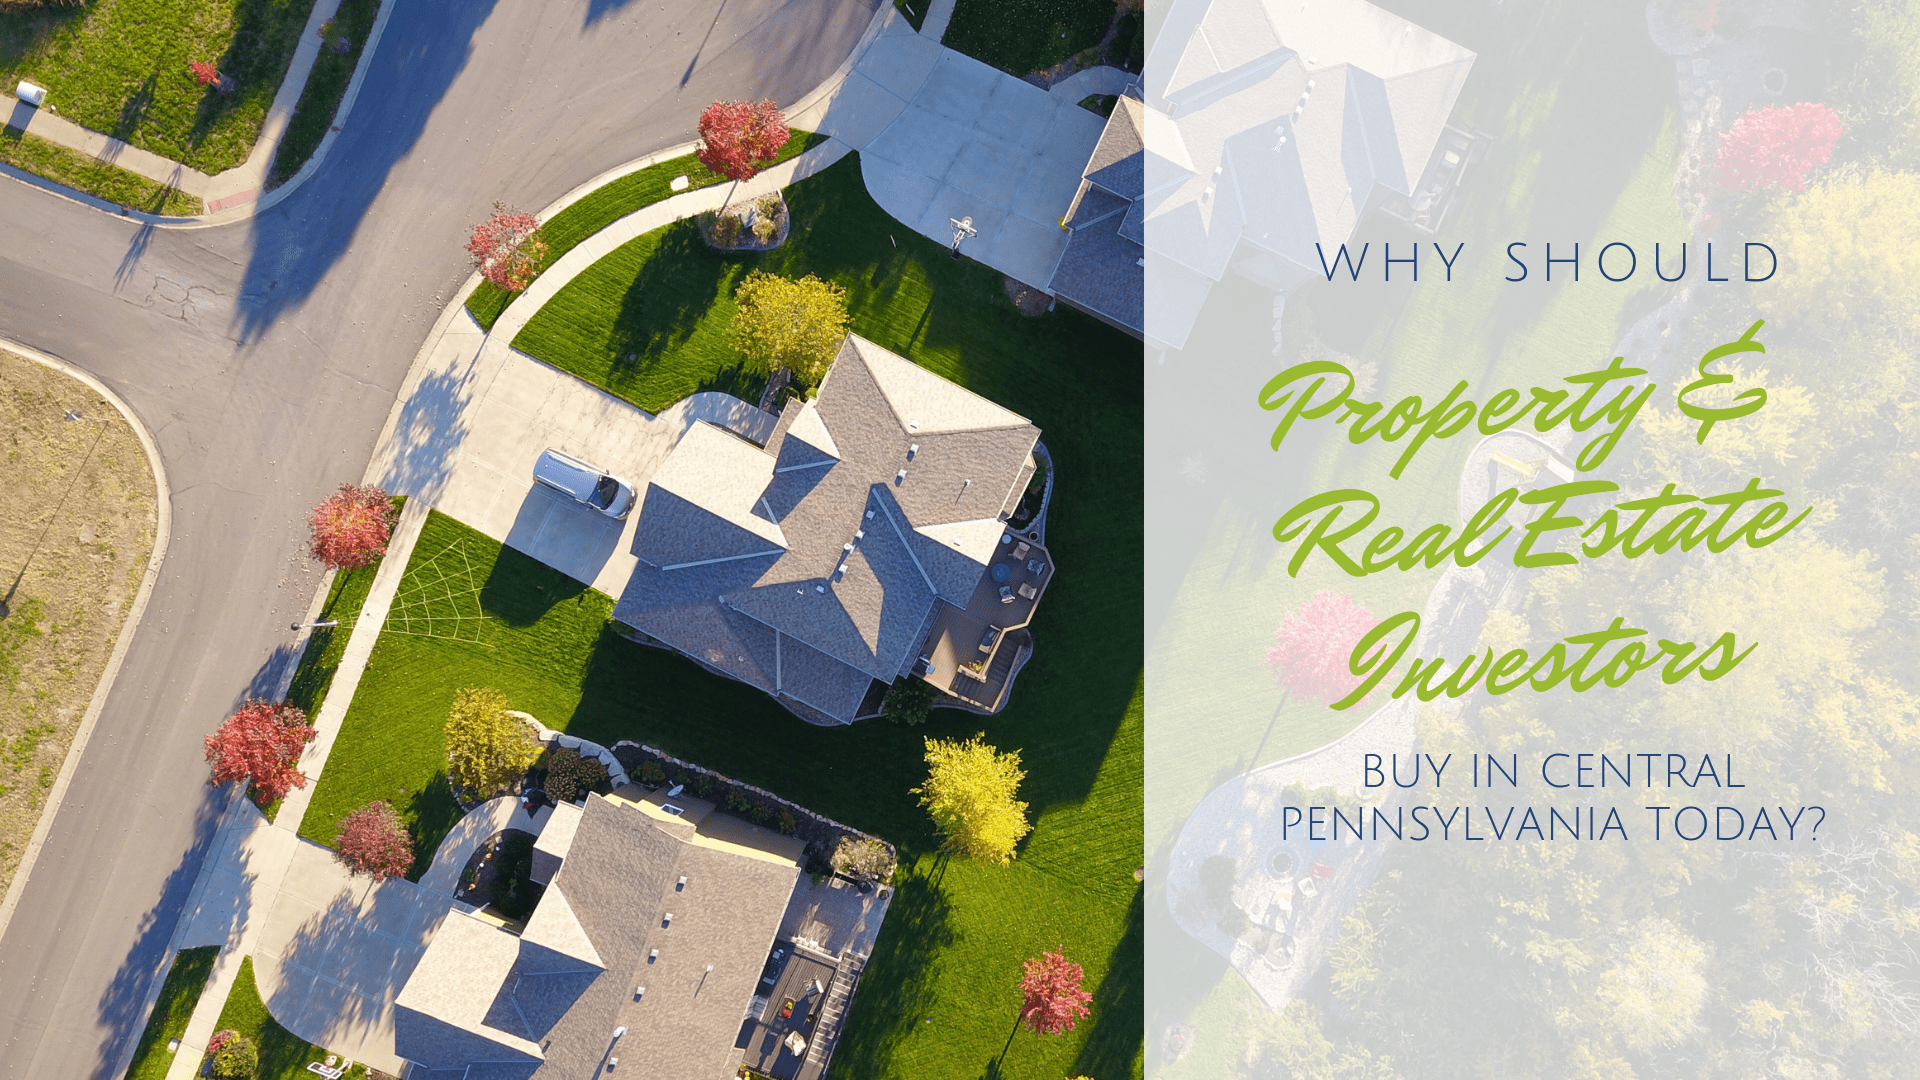 Why Should Property & Real Estate Investors Buy in Central Pennsylvania Today